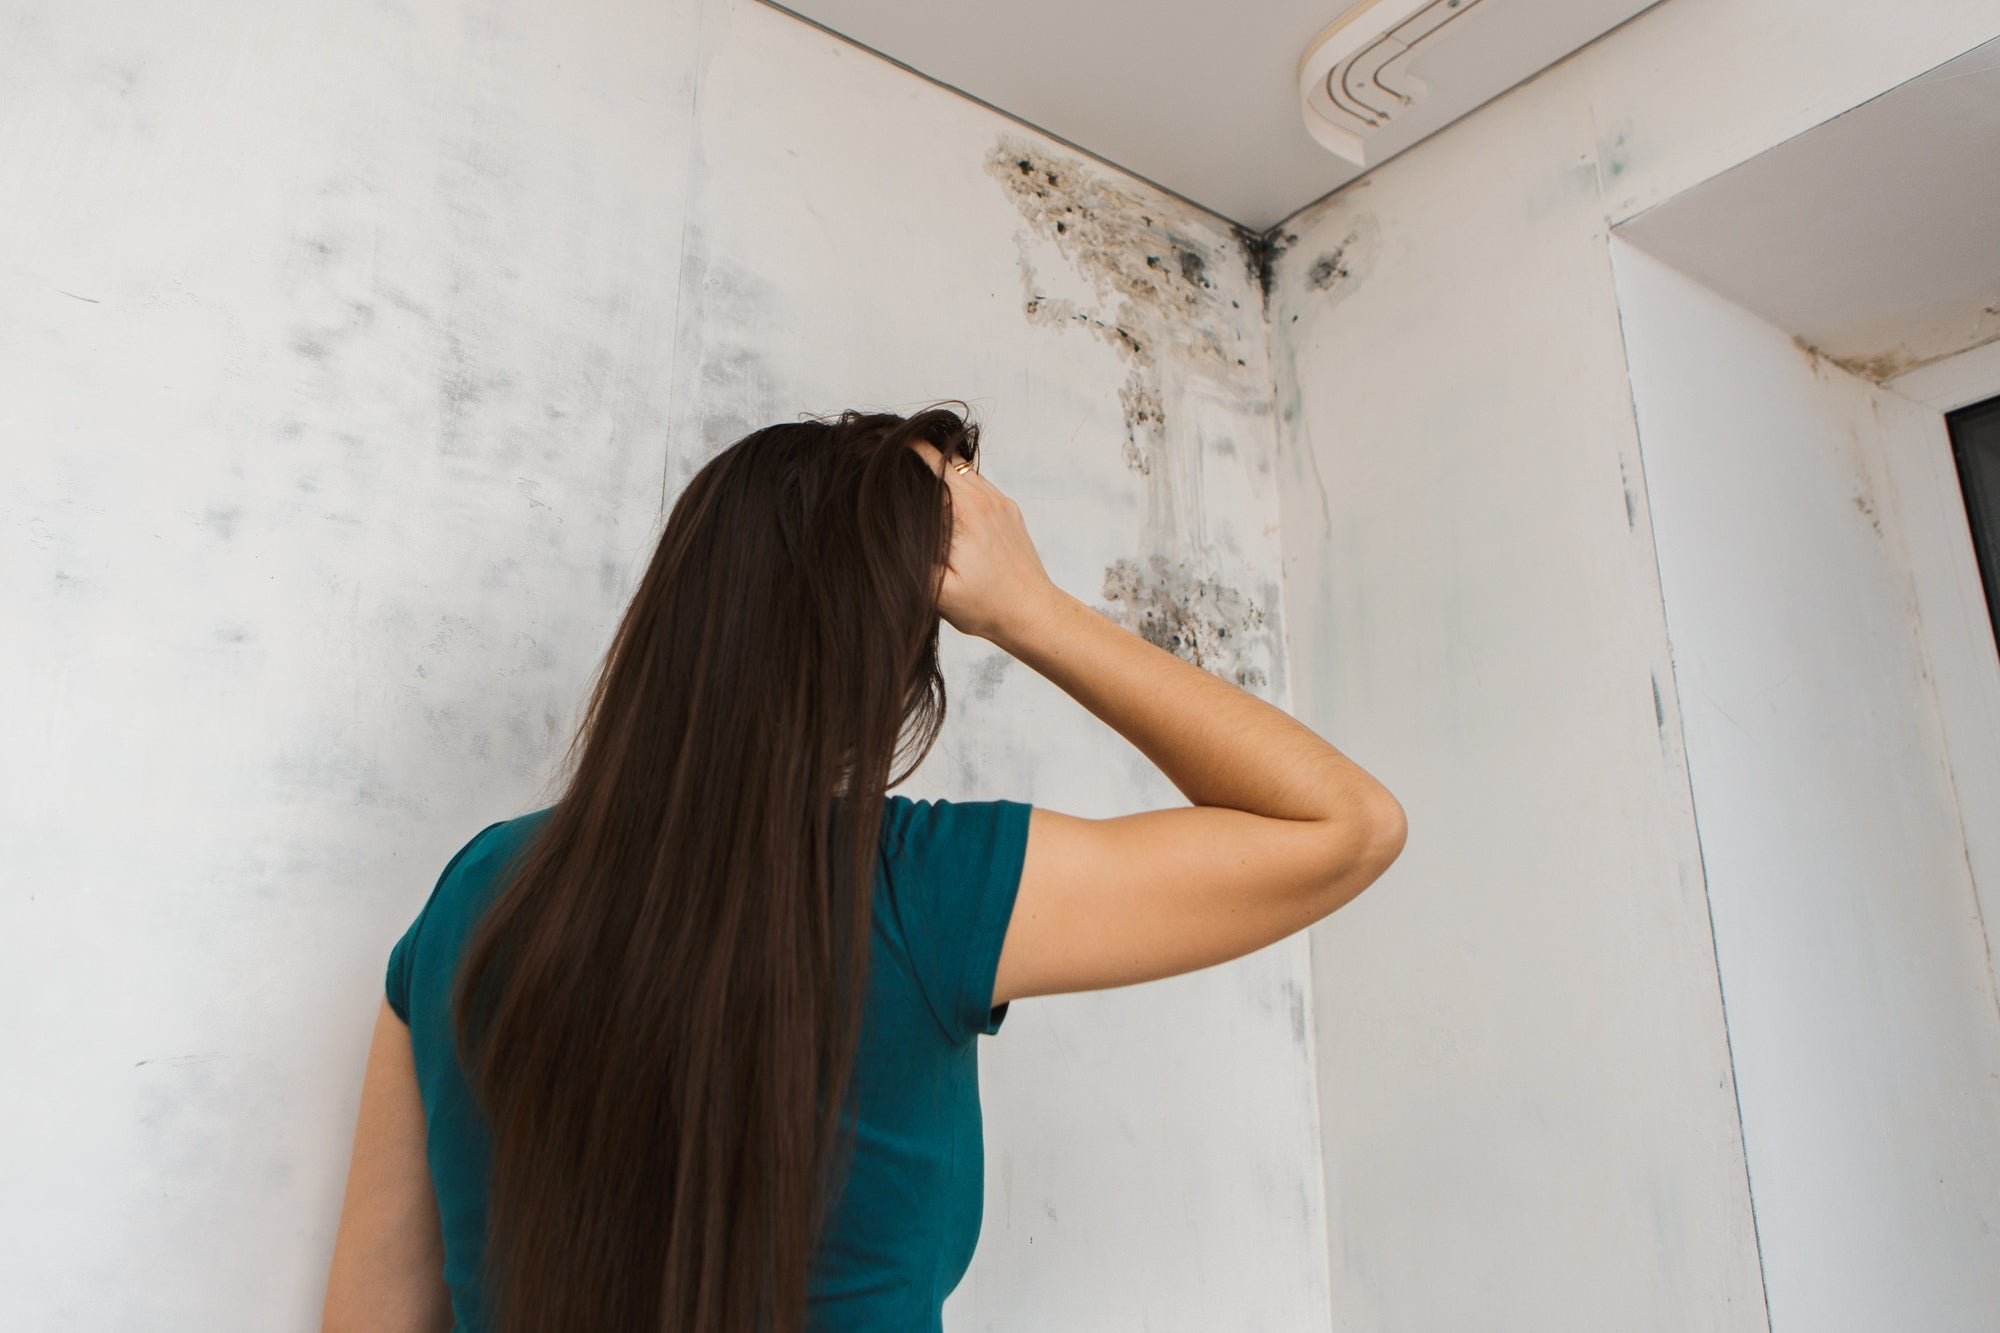 How to Protect Against At-Home Mold